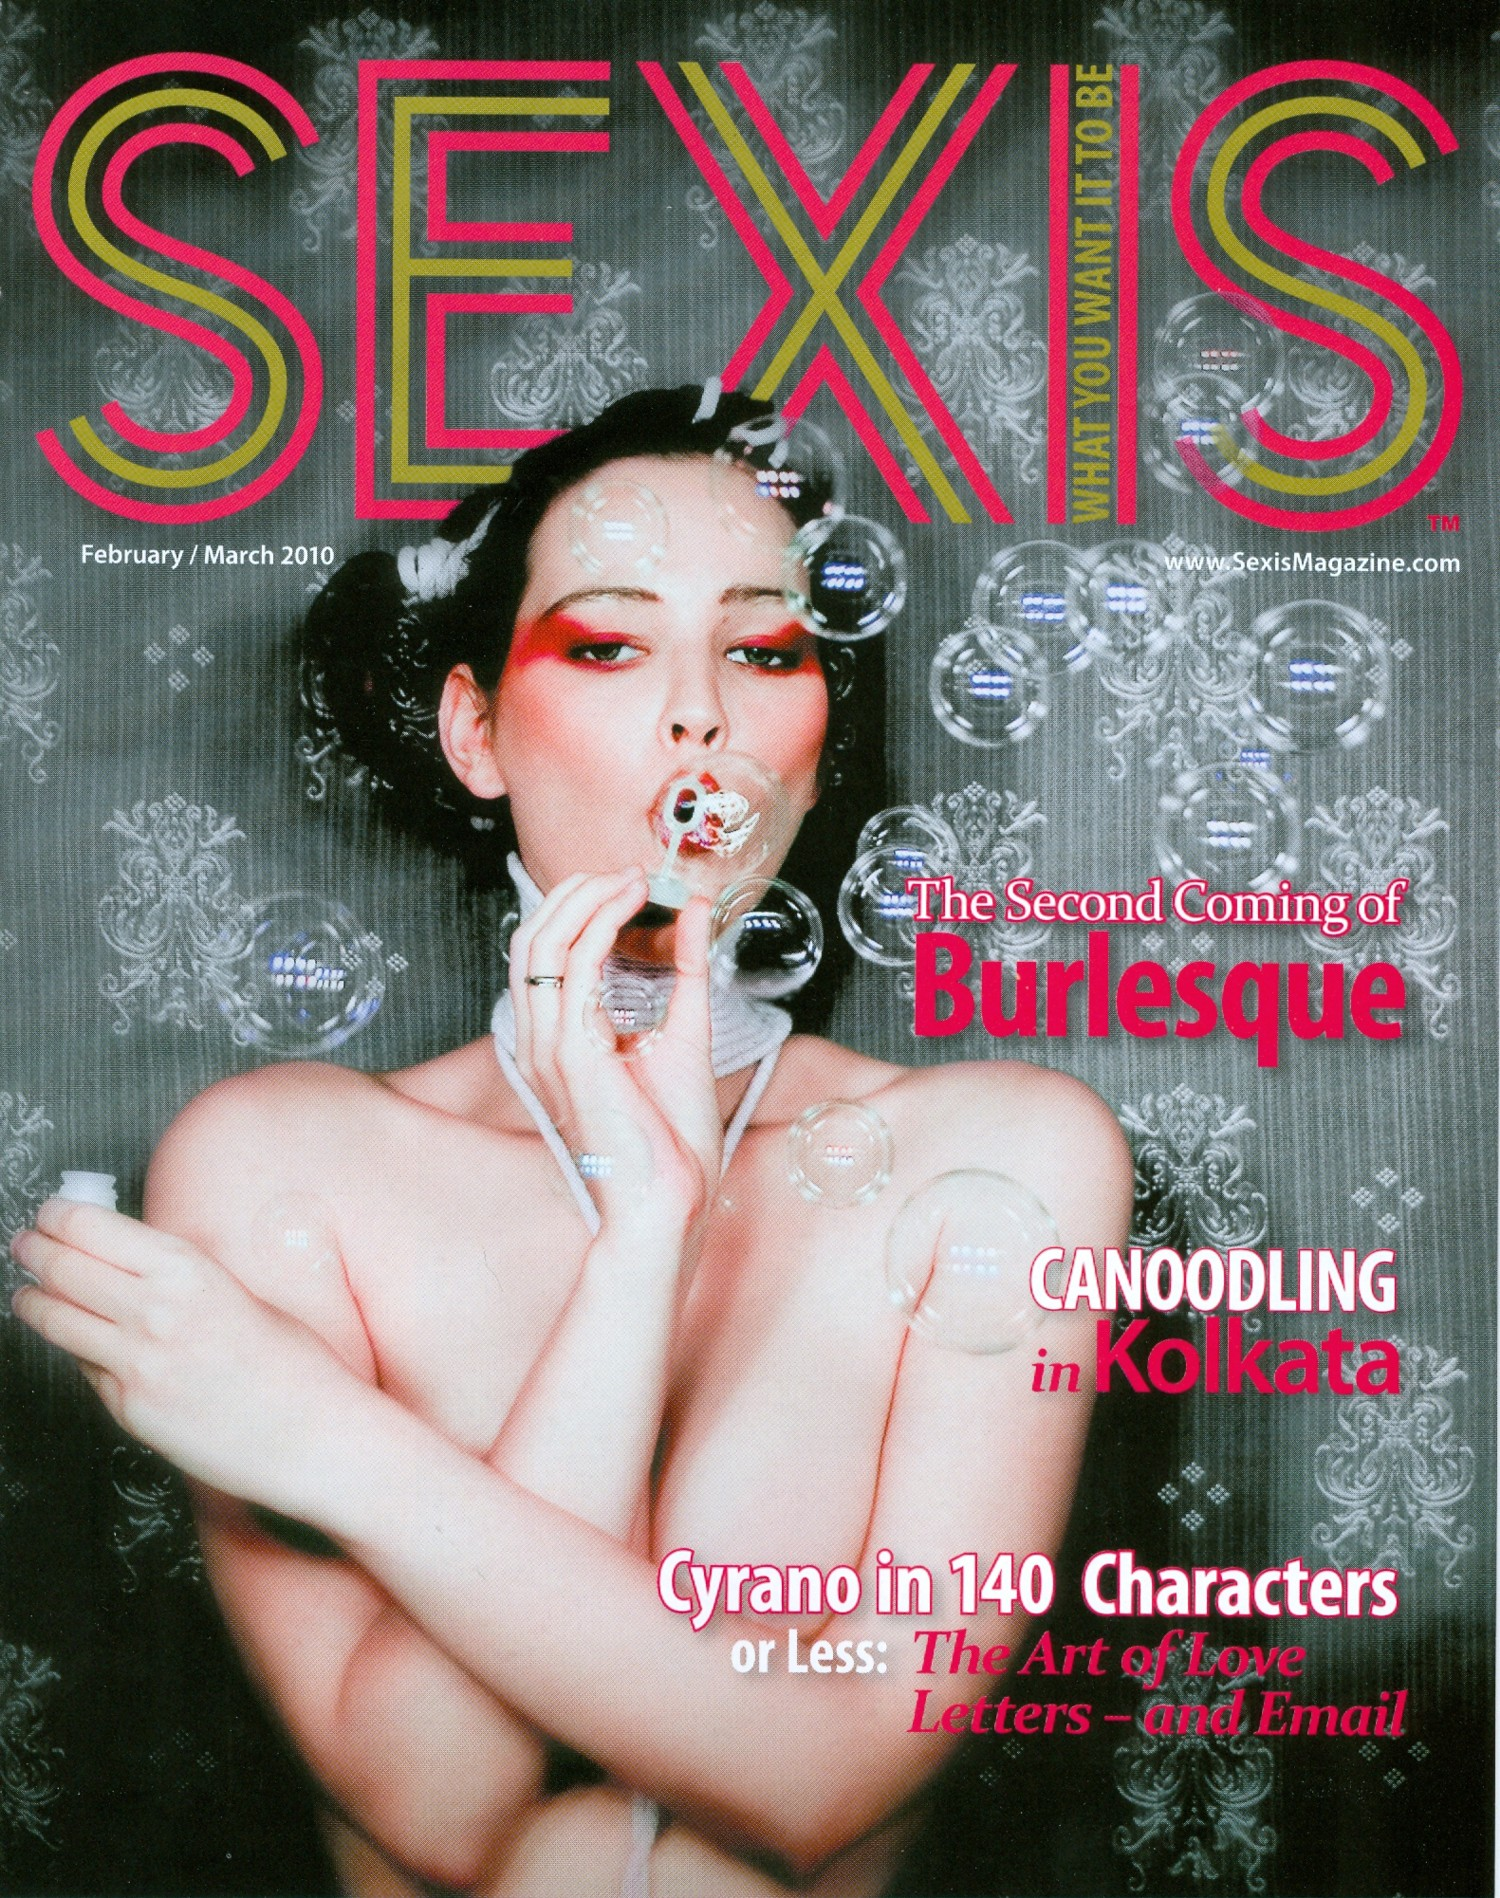 ... sxs hot kiss image search results http gal5 piclab us key sxs 20hot